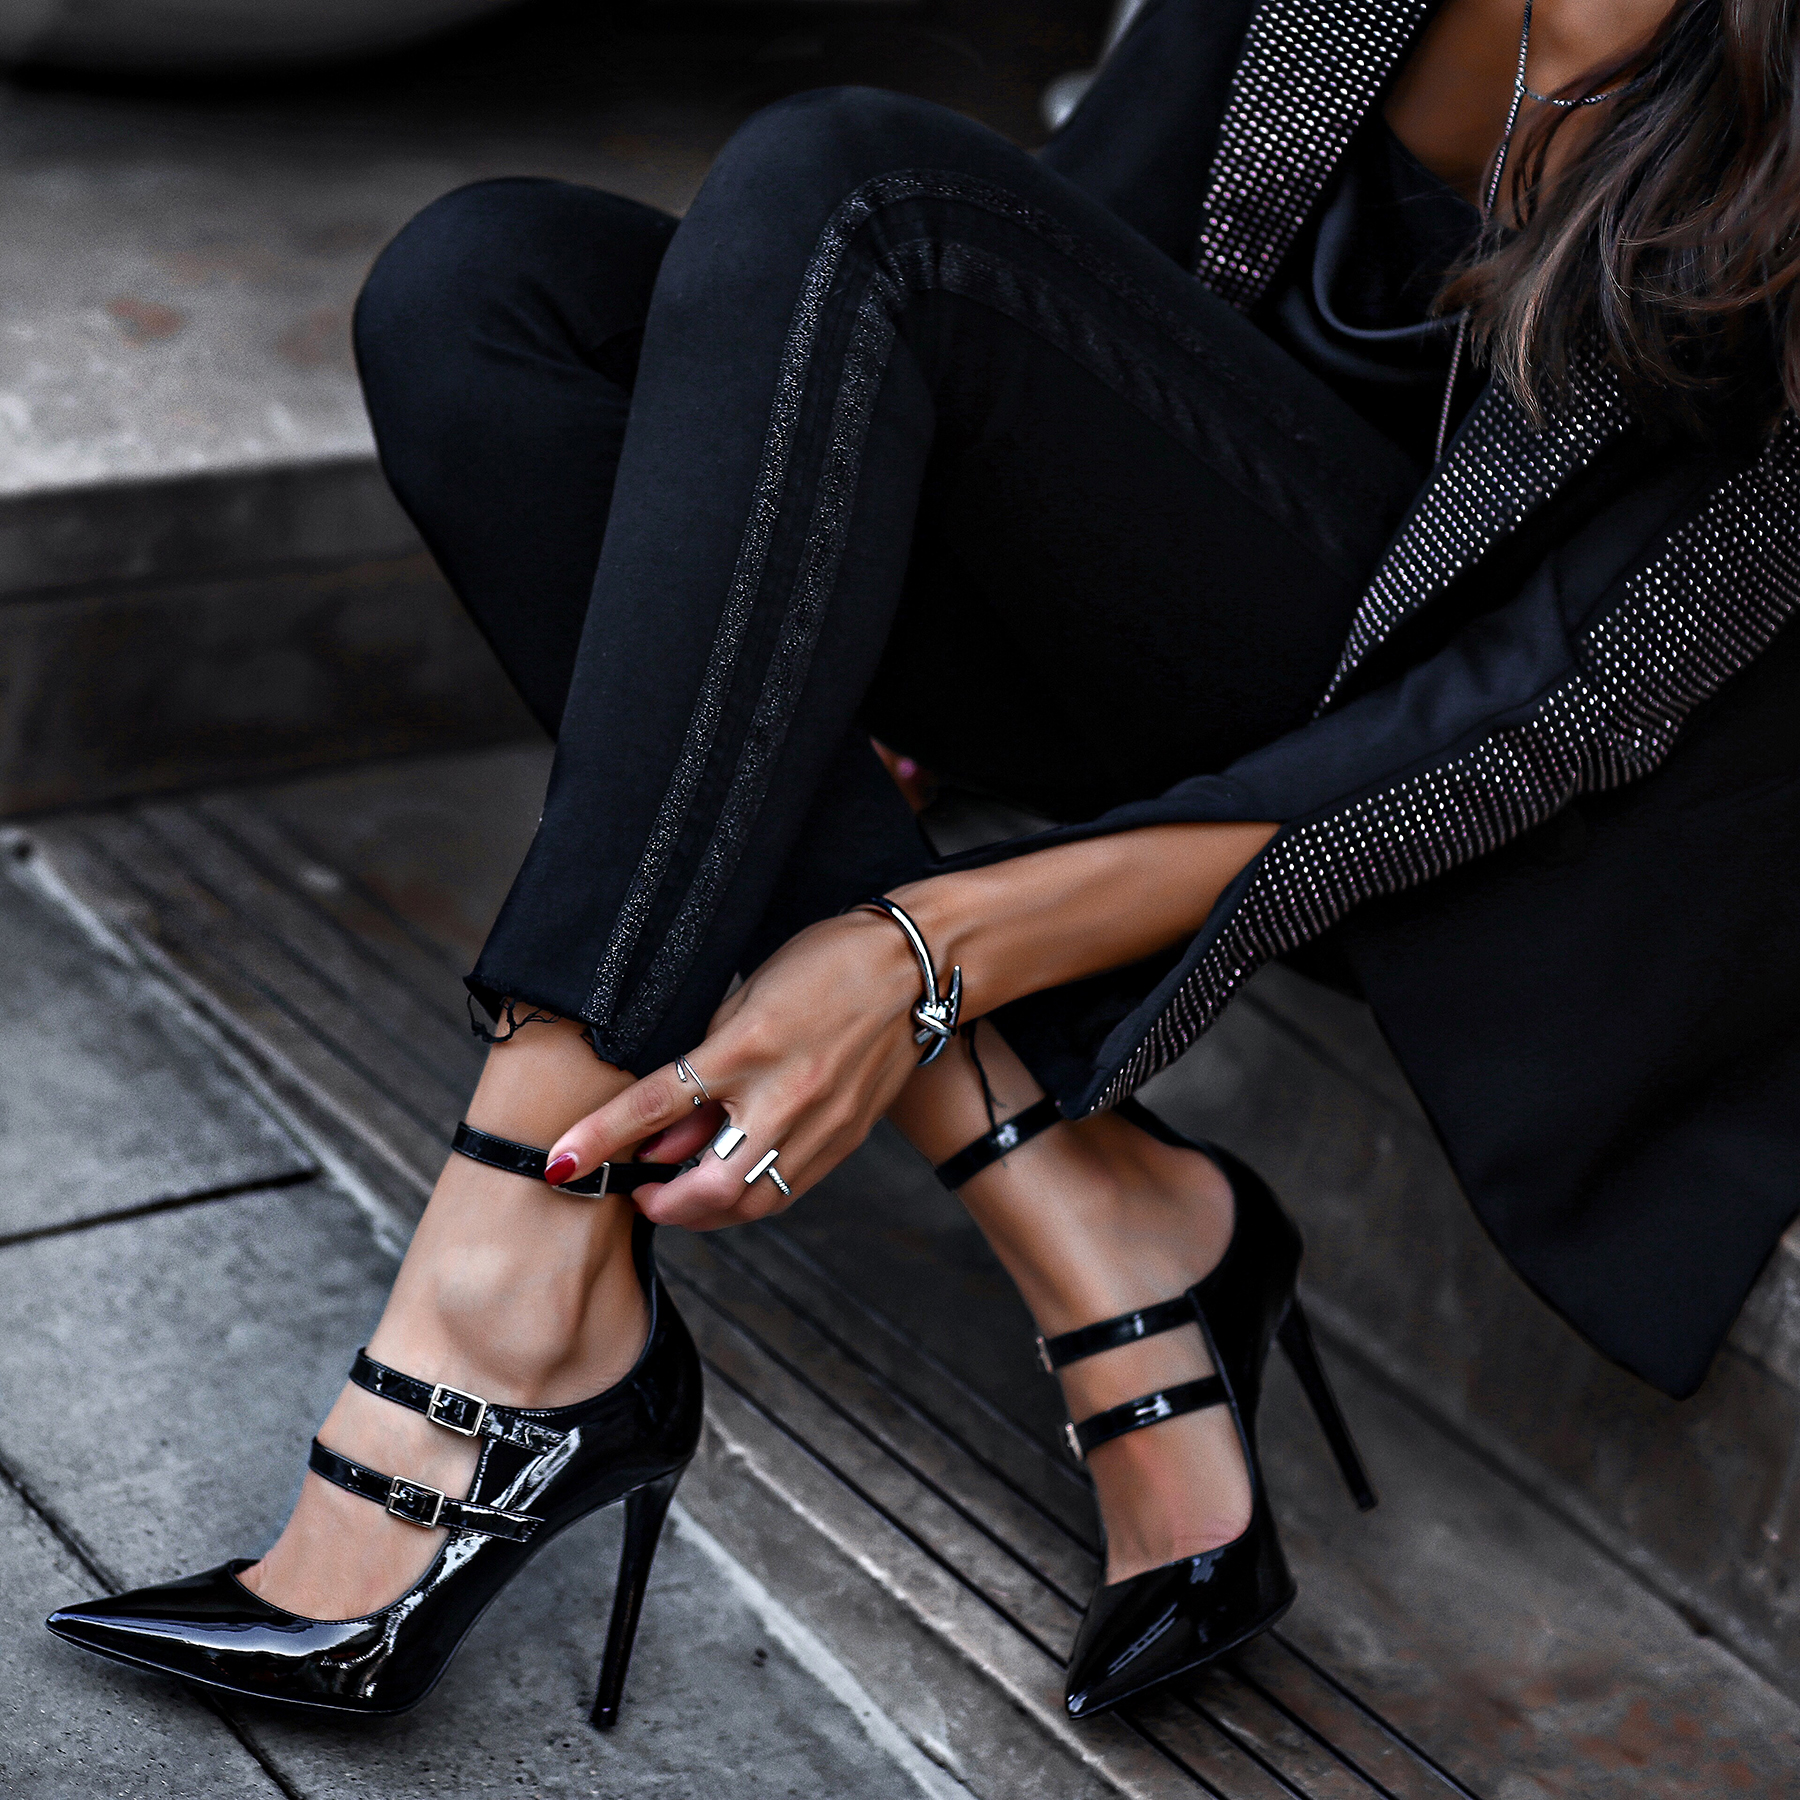 H&M Studded Blazer Holiday Look Mother Denimm Jeans Silver jewelry Tamara Mellon Pistol Patent Pumps.jpg